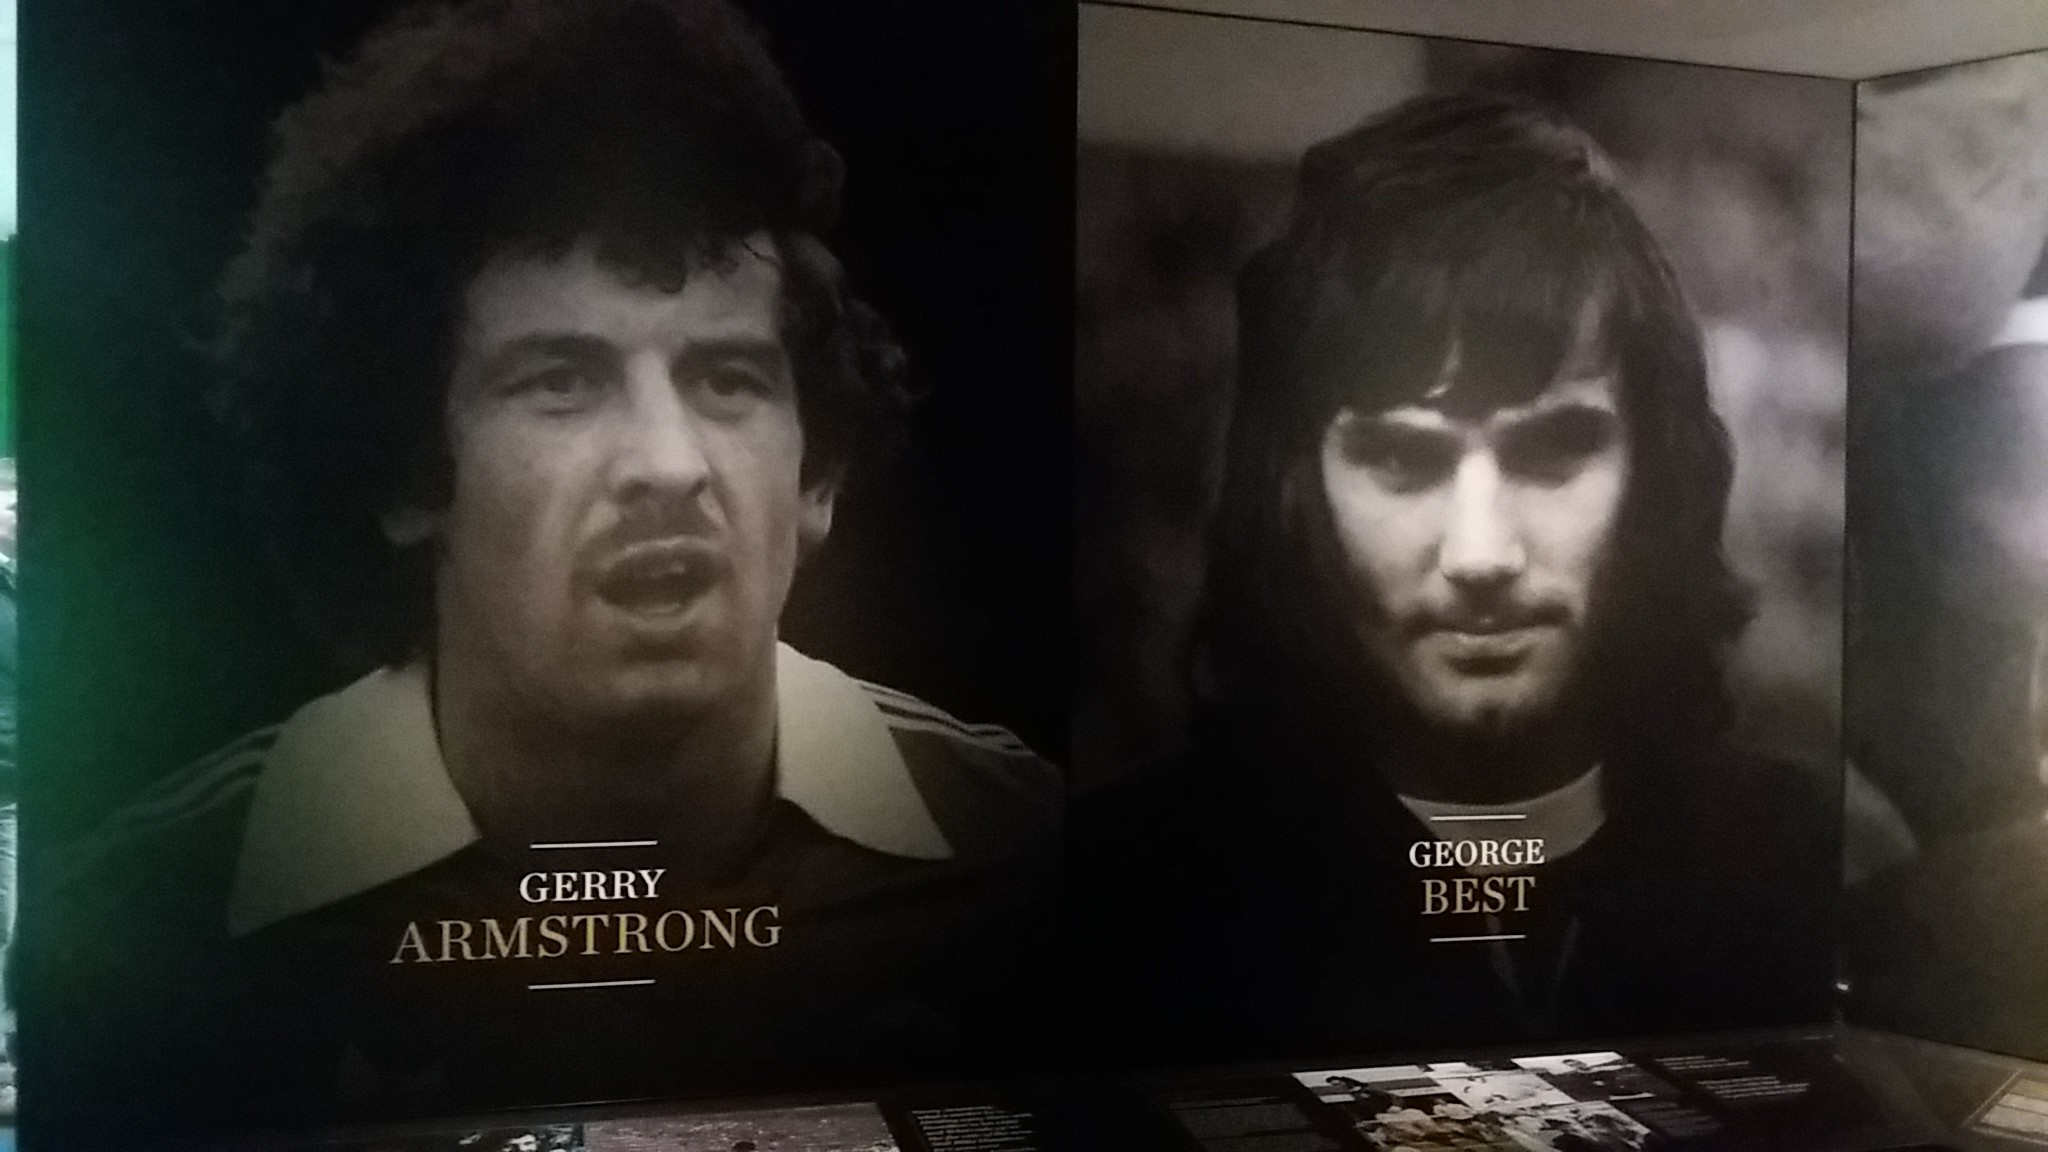 Gerry Armstrong And George Best In The Hall Of Fame